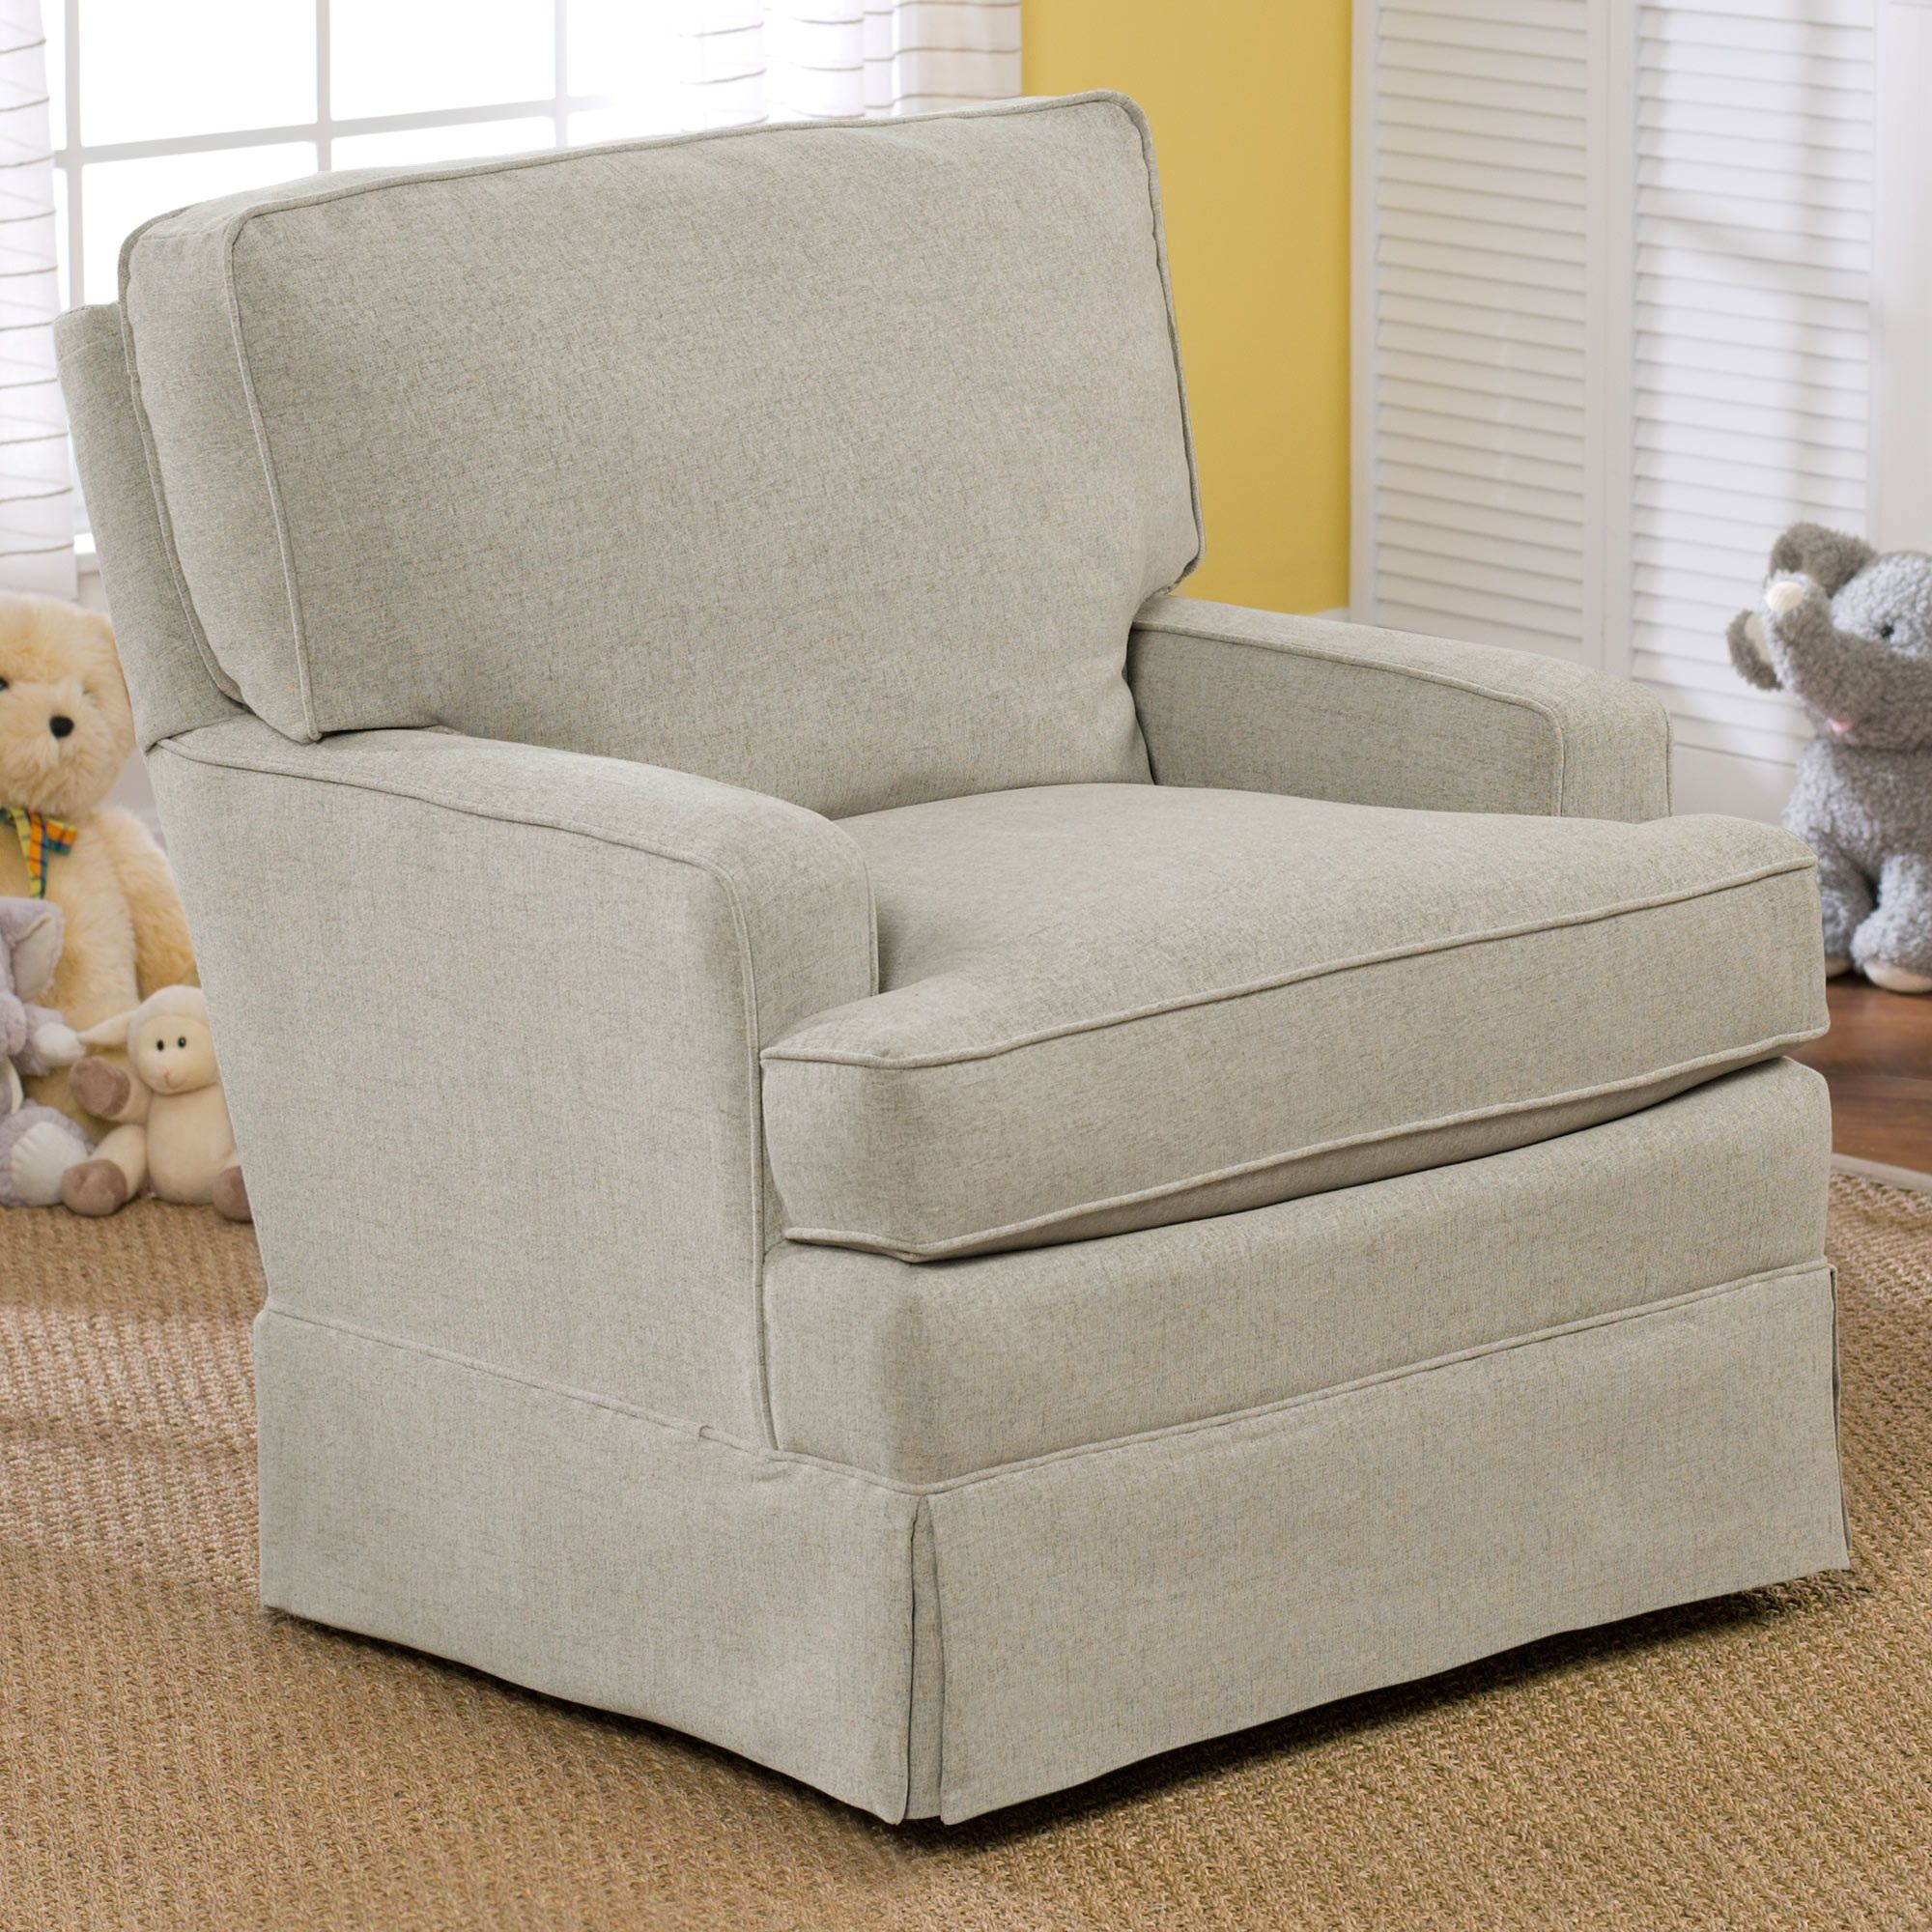 Best Chairs Charlotte Upholstered Swivel Glider Grey ...